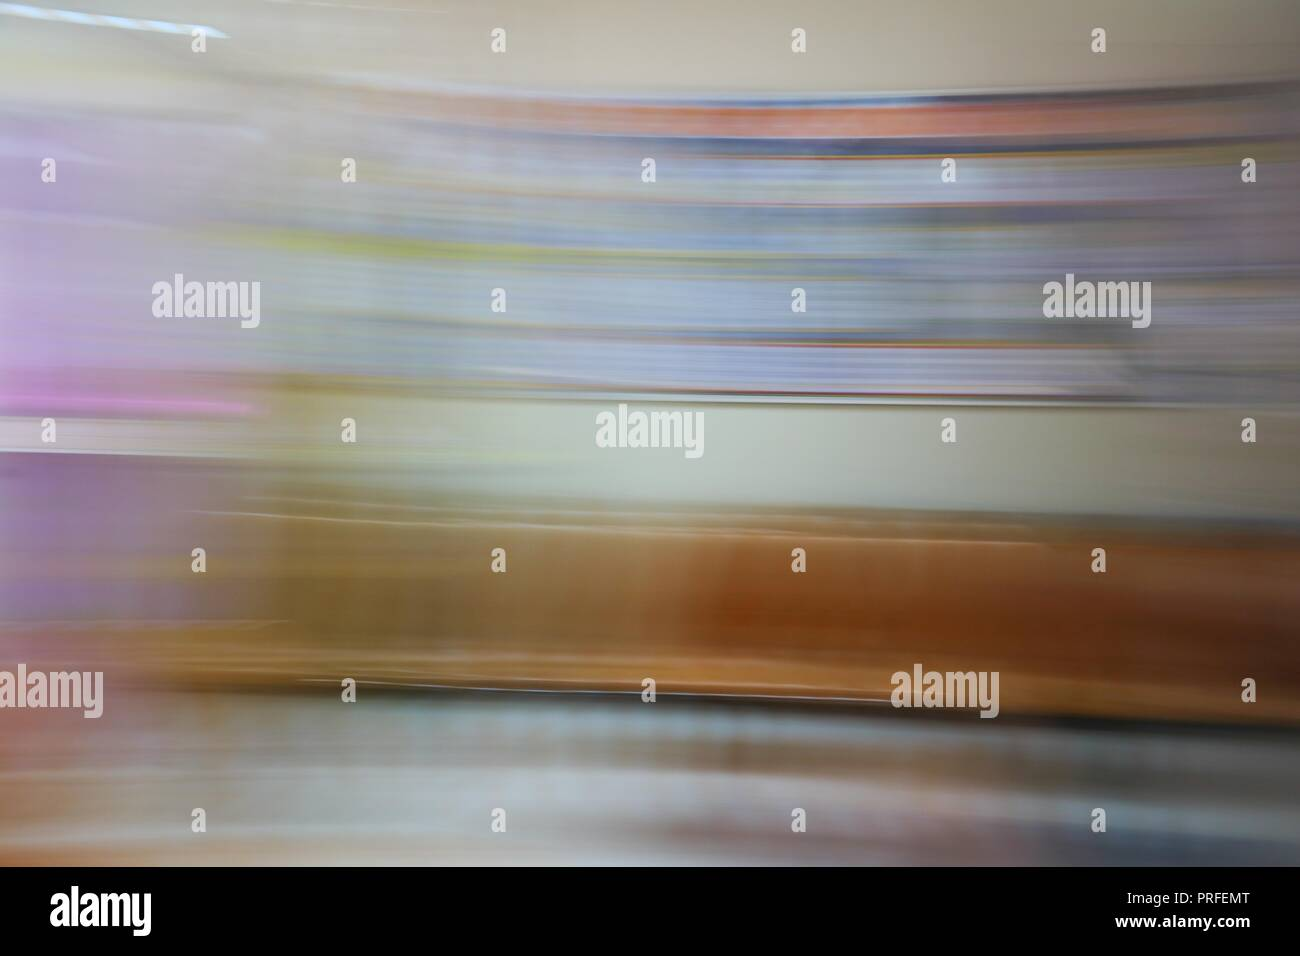 Motion varicolored beautiful blurred abstract   background. - Stock Image